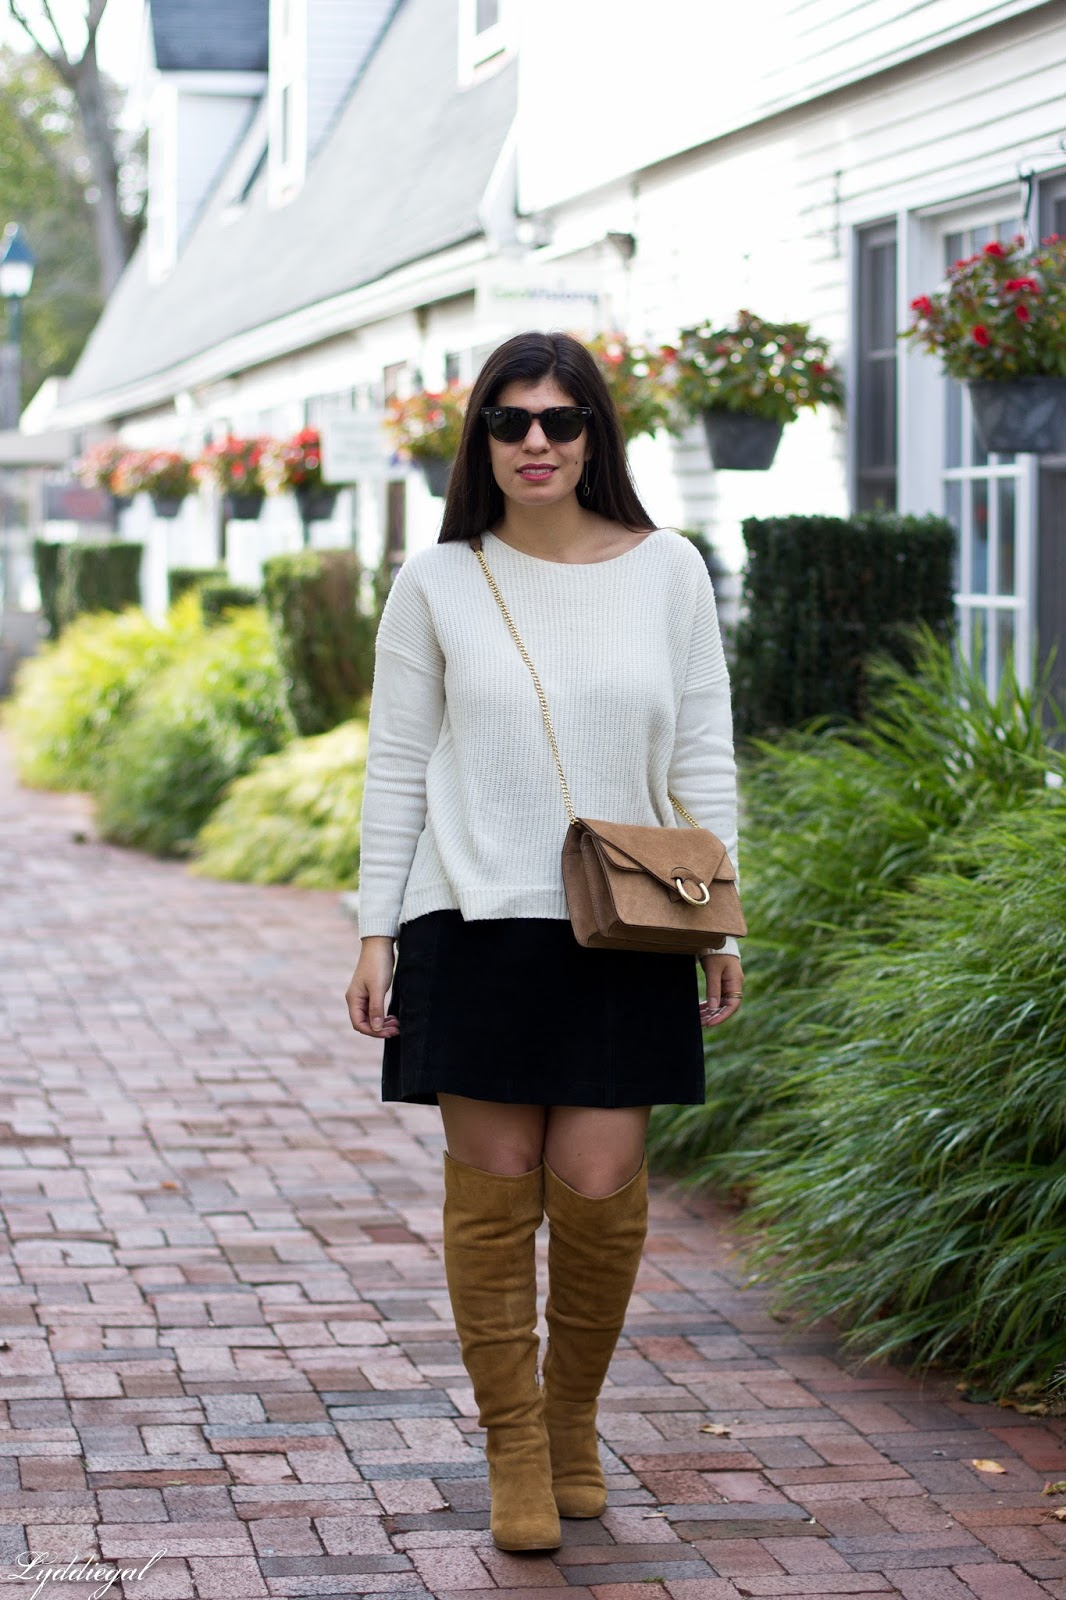 How to style over the knee boots with a skirt